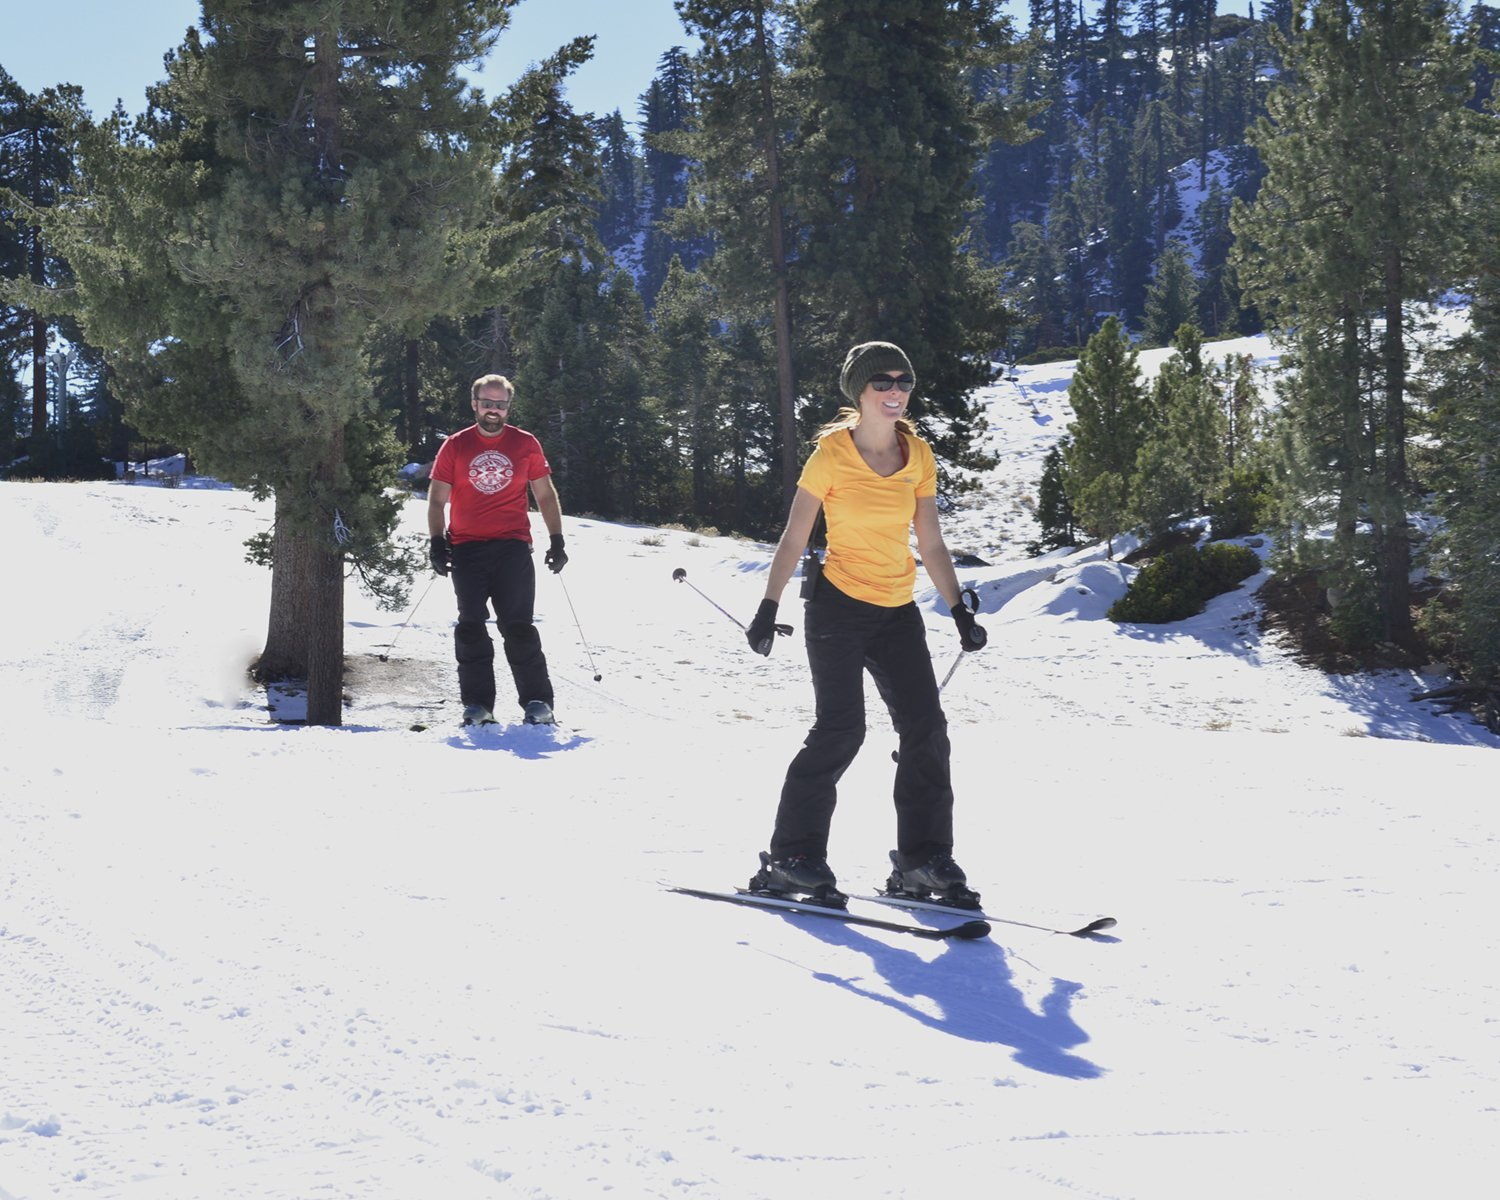 A male & female skiier skiing across gentle slope in t-shirts